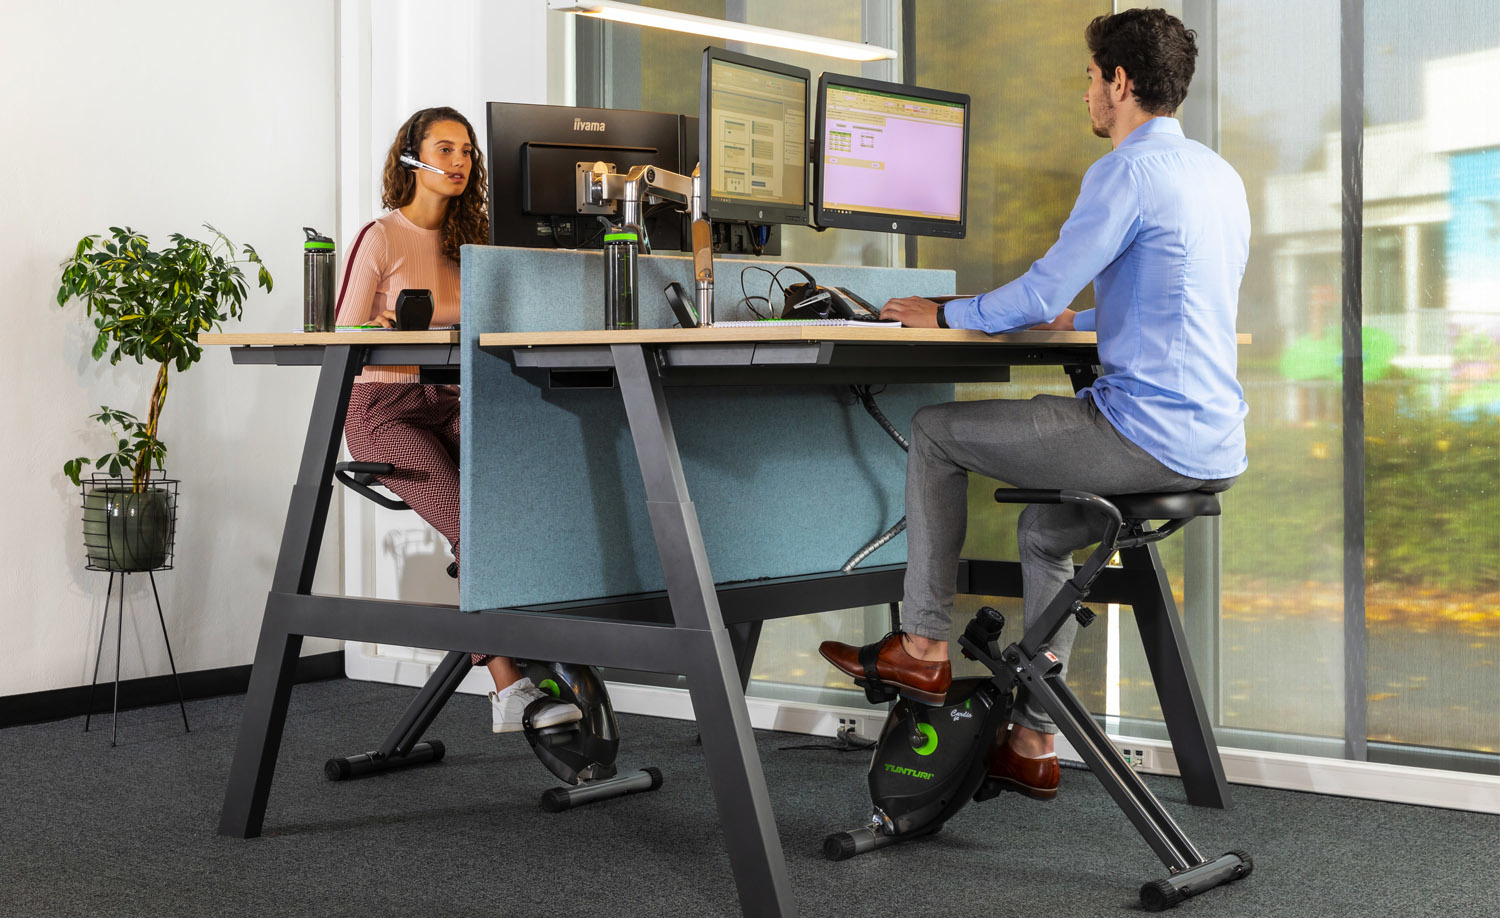 Five tips for exercising in and around the workplace